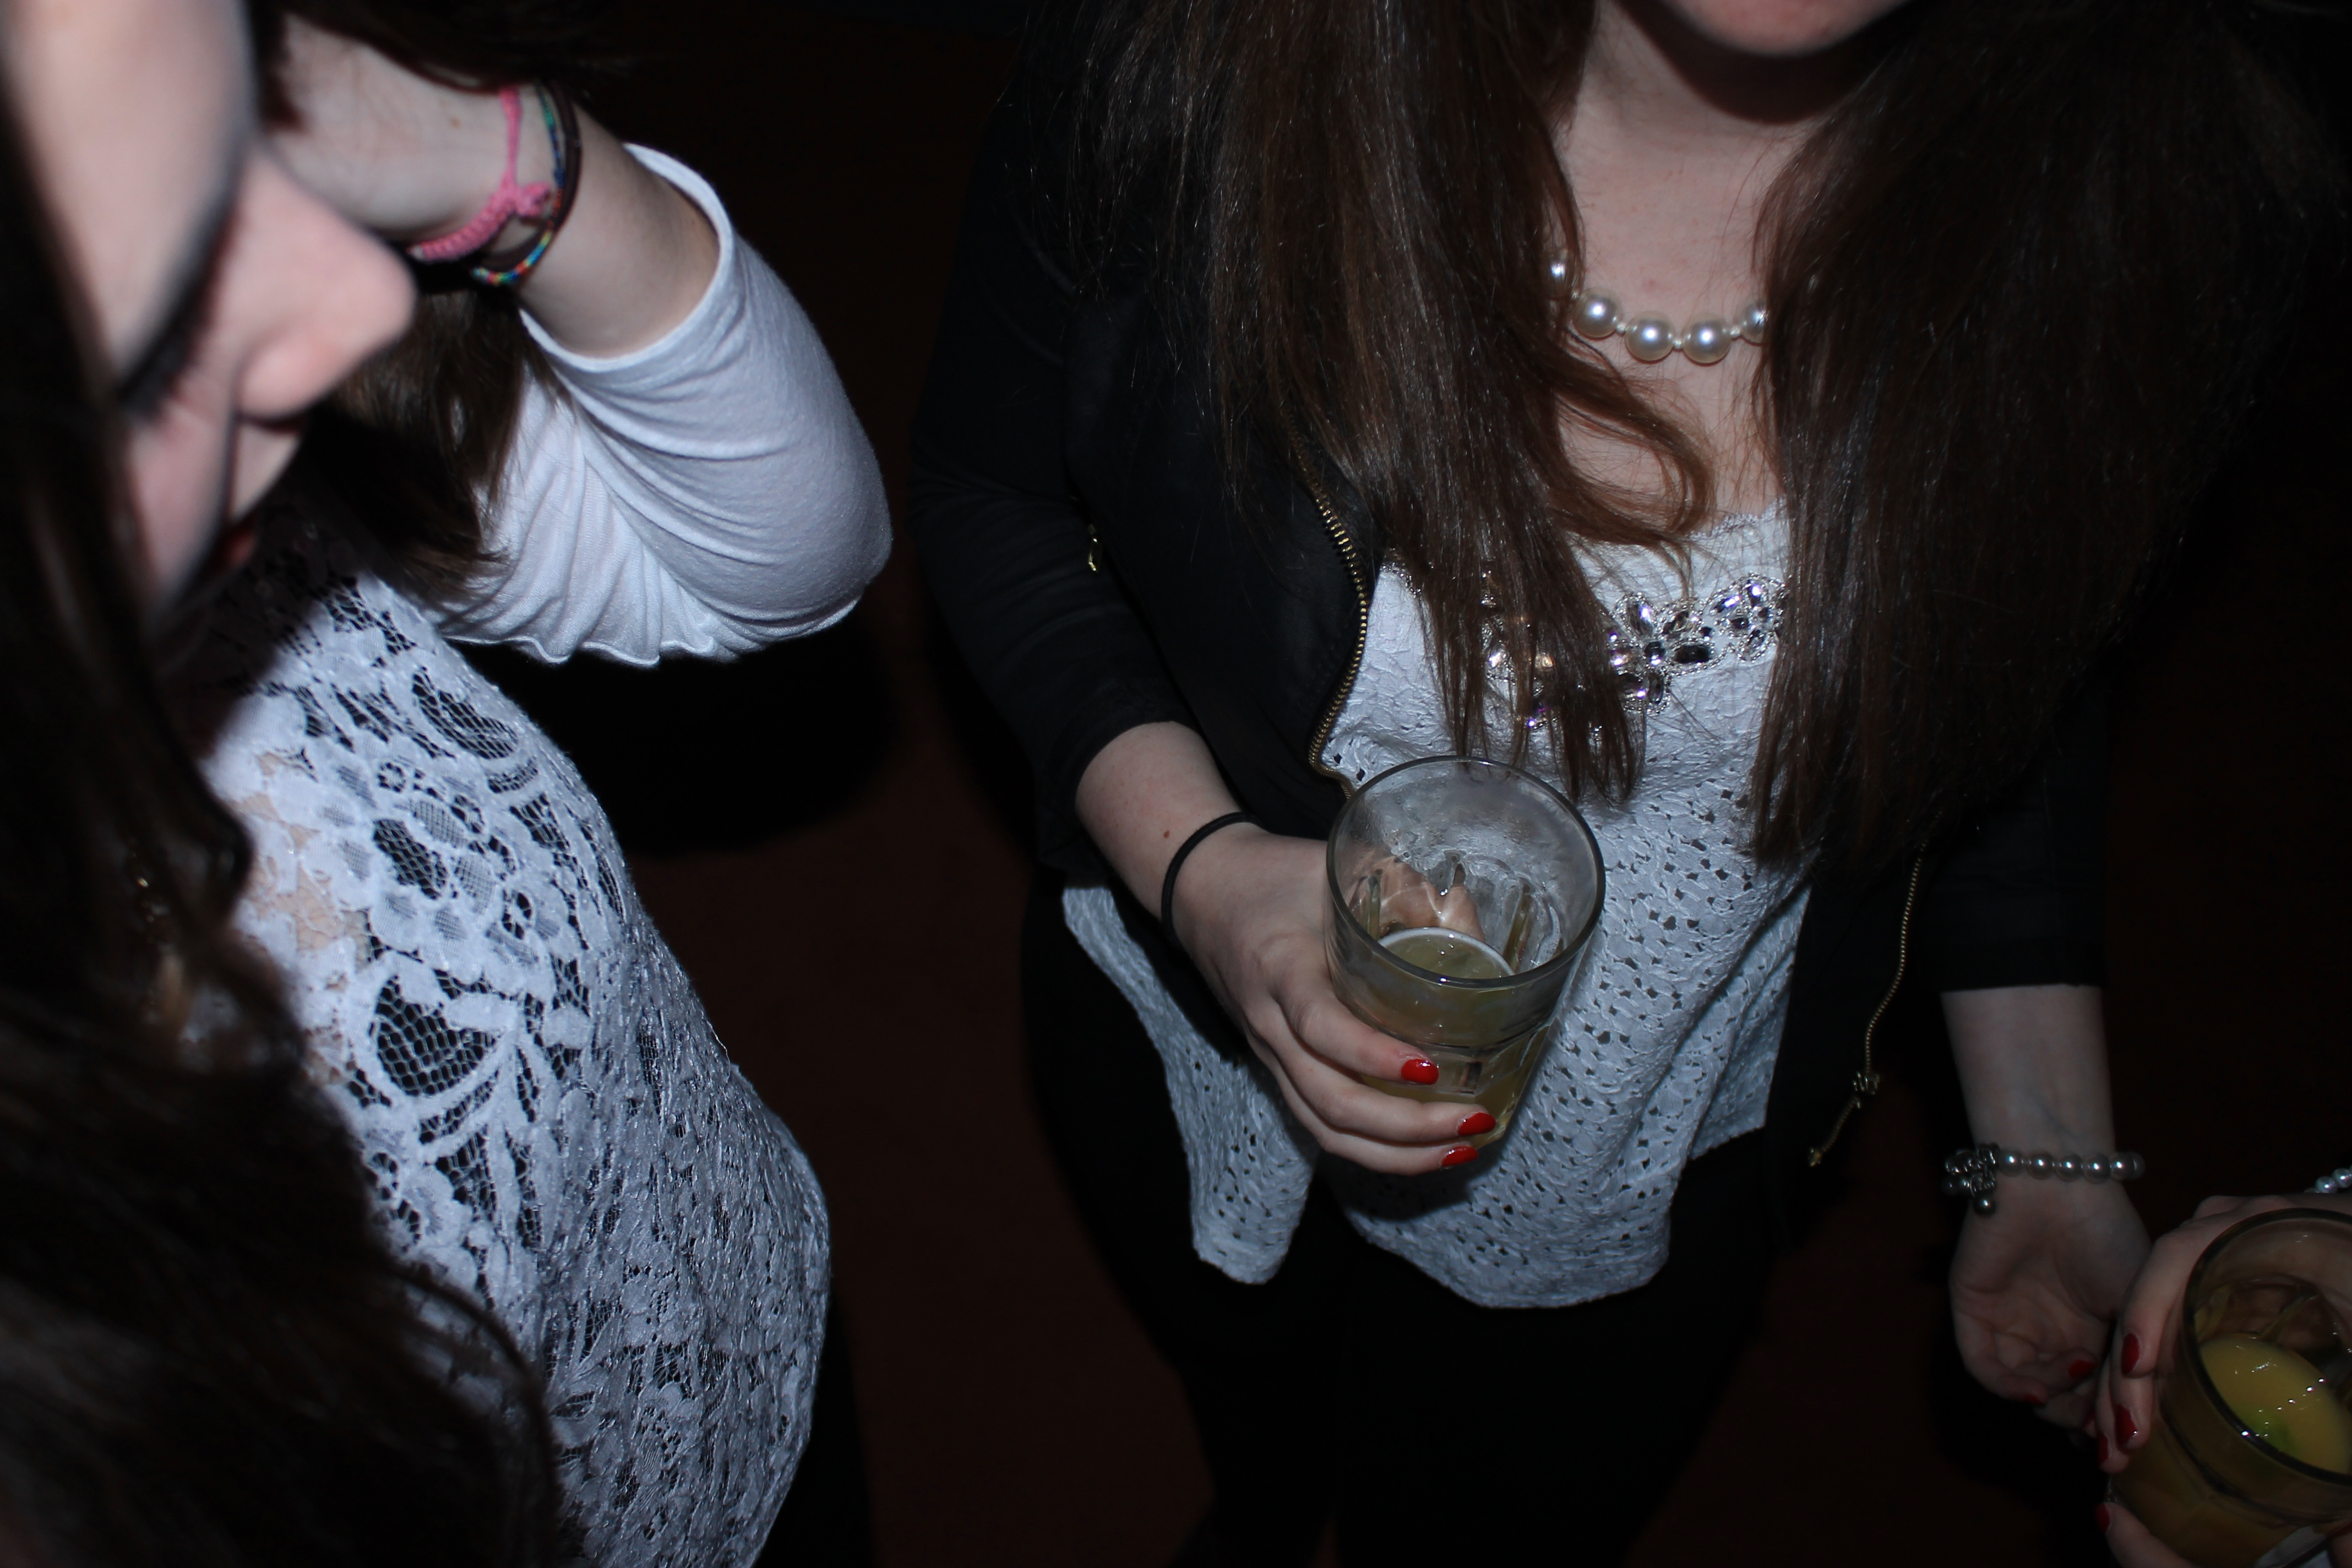 Teen girls holding drinks at a party.